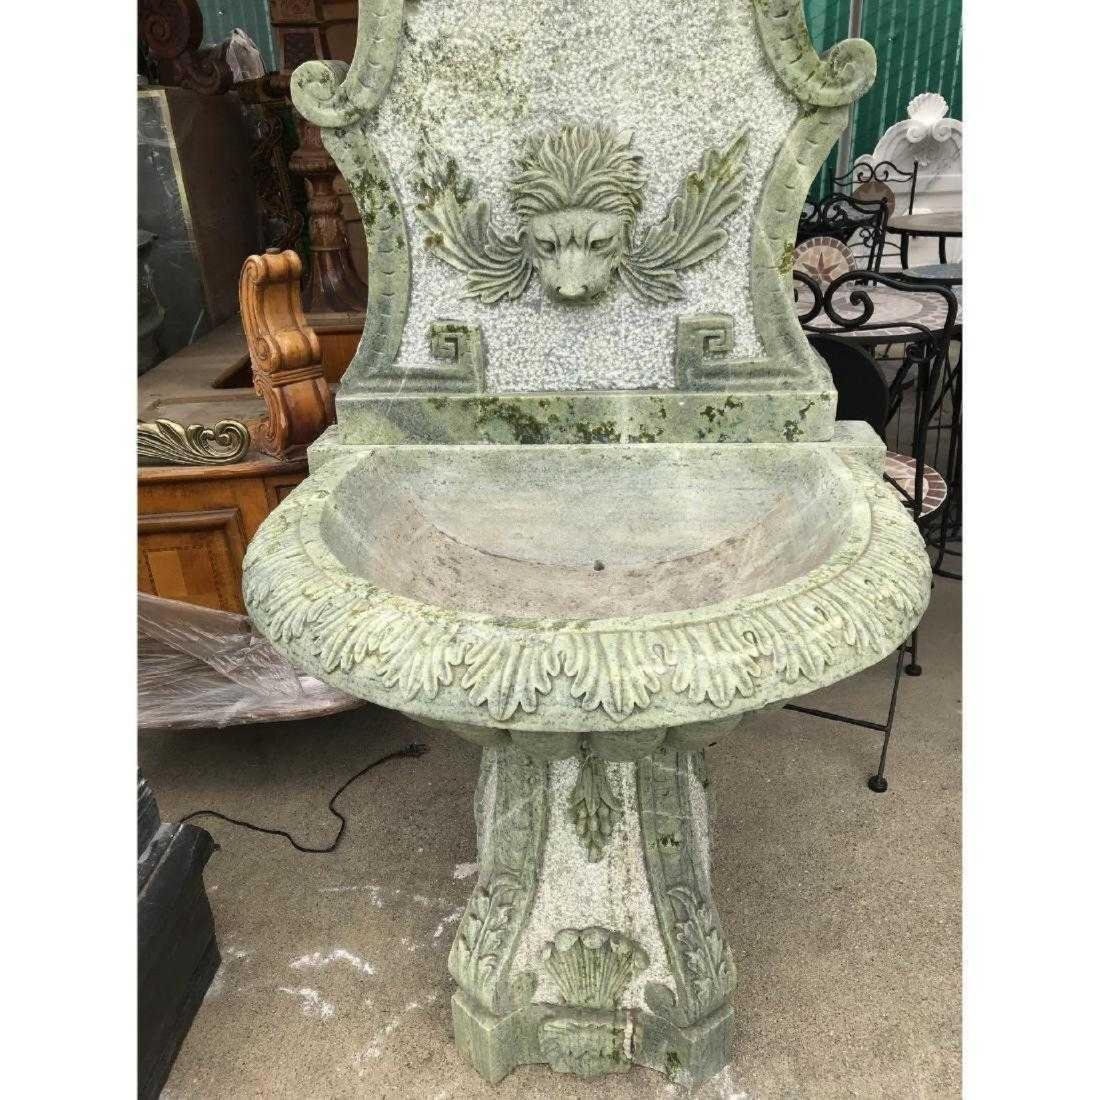 Green Marble Fountain with Lion Head - 3